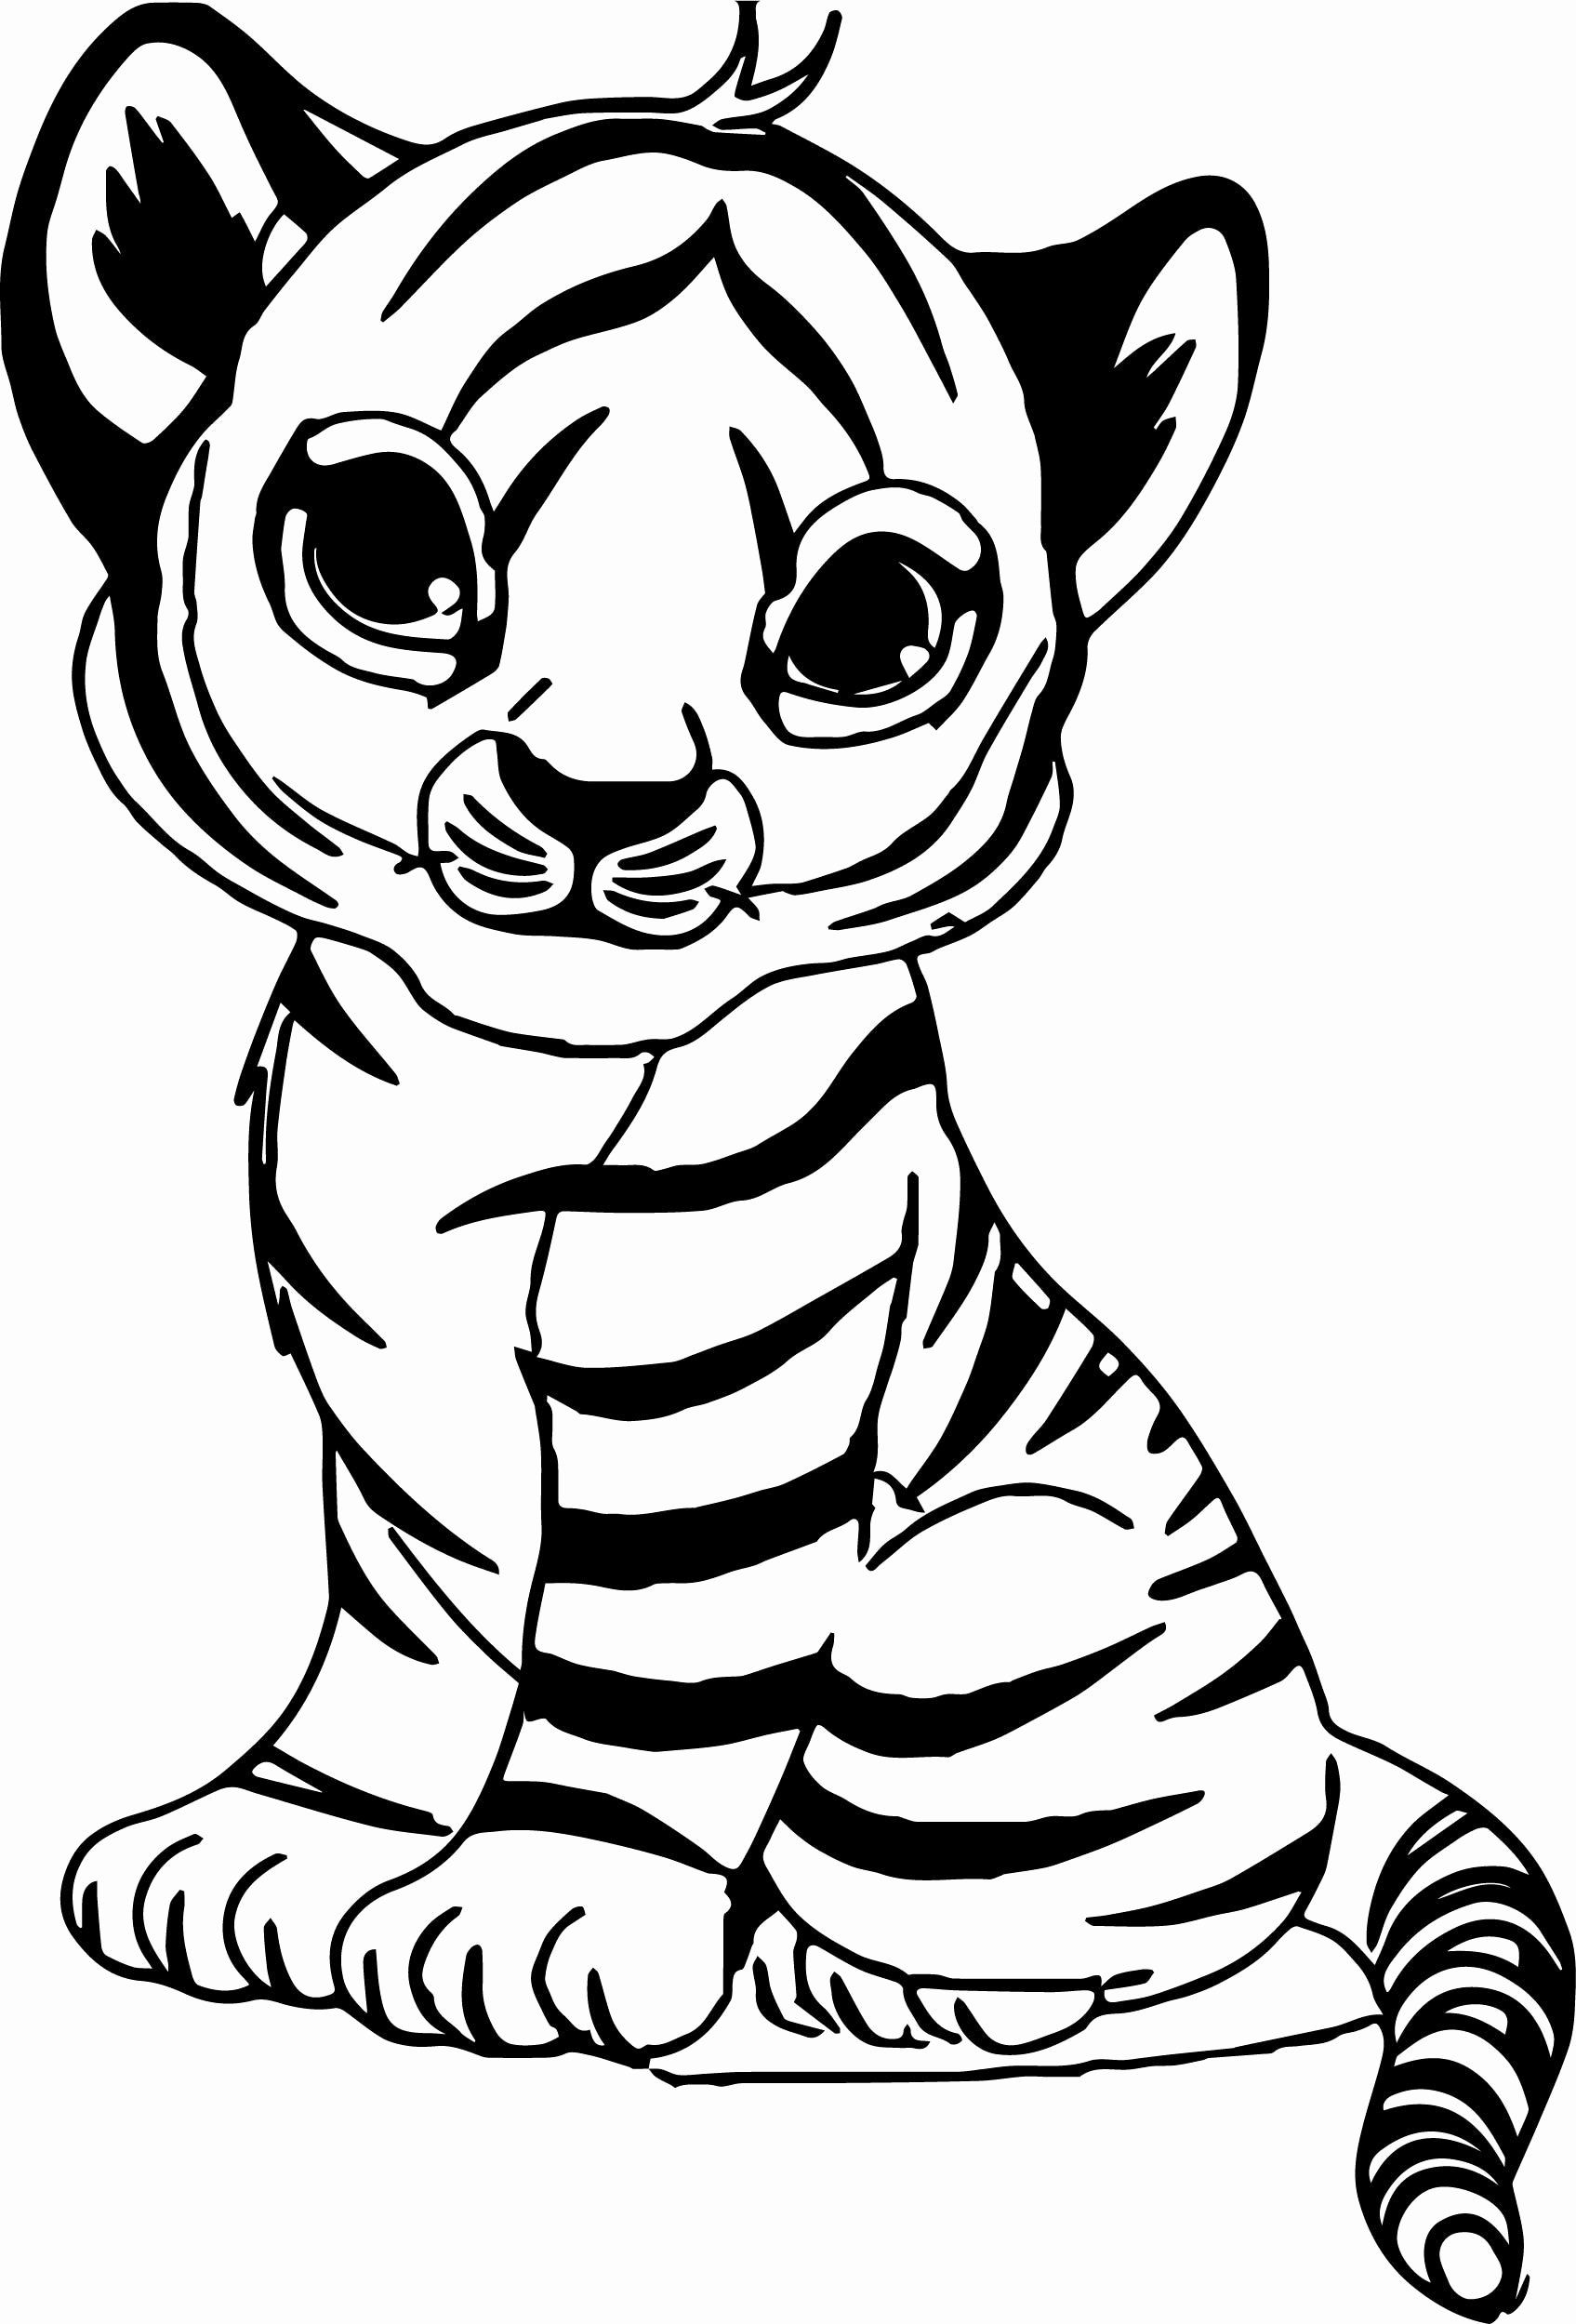 zoo animals coloring pictures printable baby animal coloring pages awesome nice cute coloring pictures animals zoo